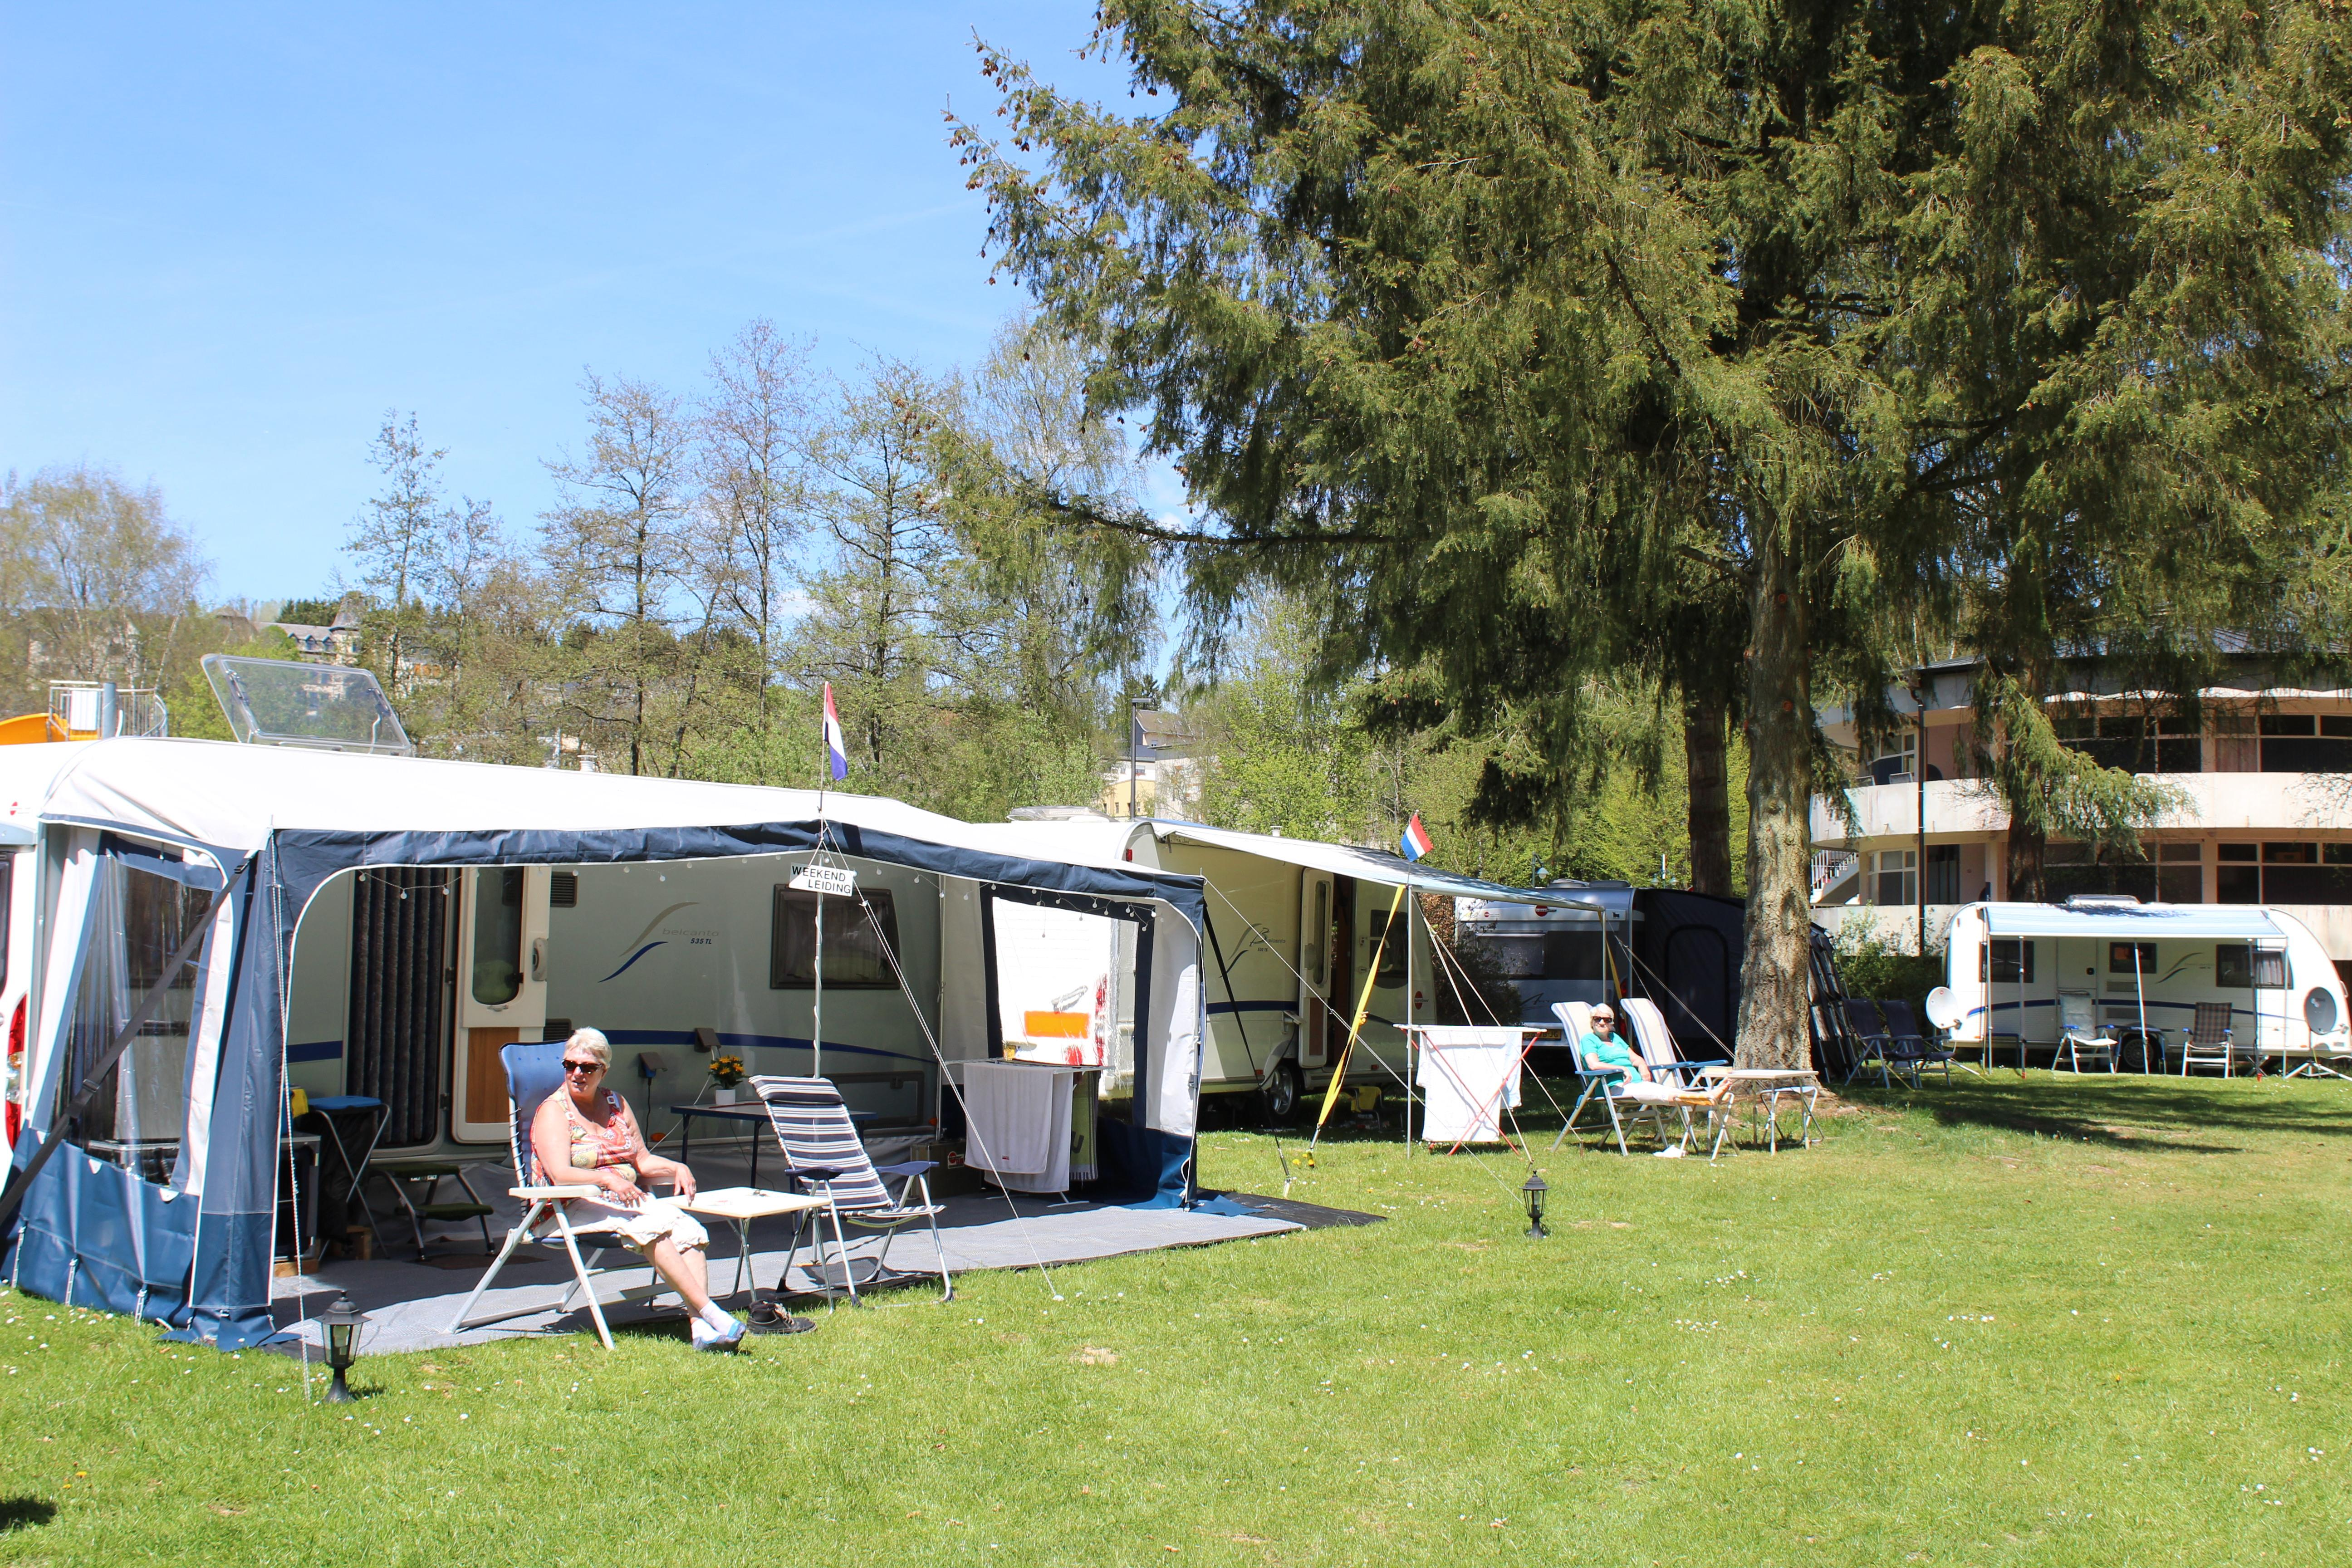 Pitch caravan,tent + 1 car and 1 person